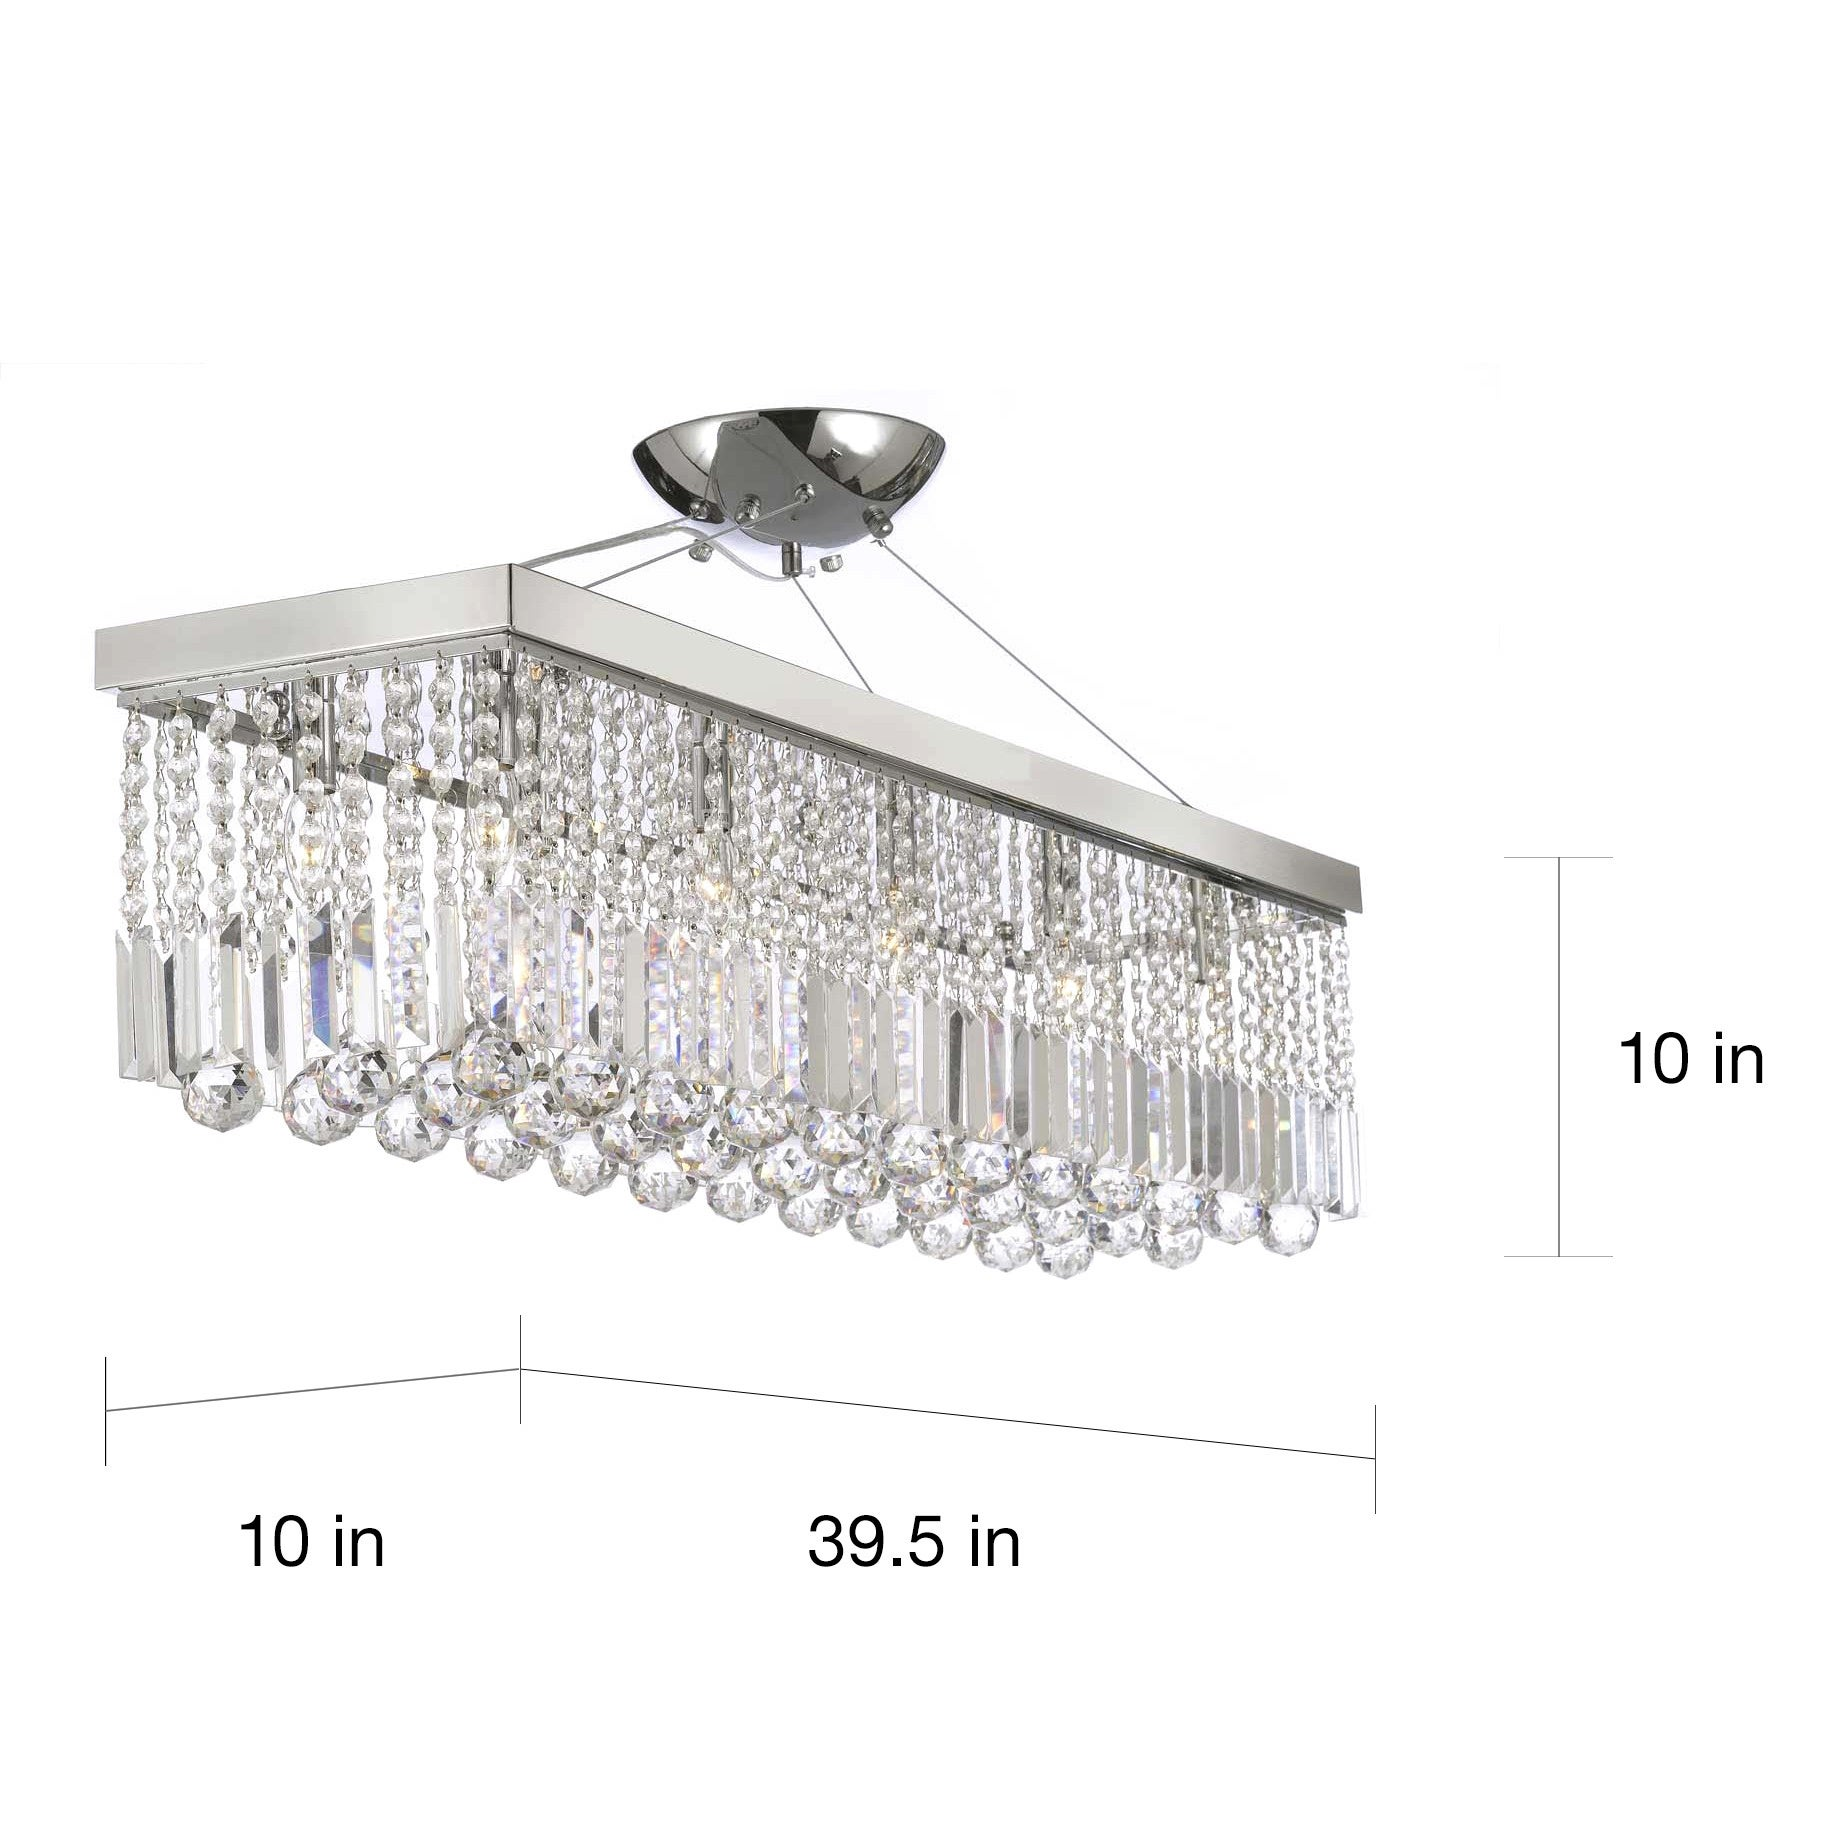 waterford by wf chrome ceiling light chr chandelier bathroom stunning pendant led marquis bresna